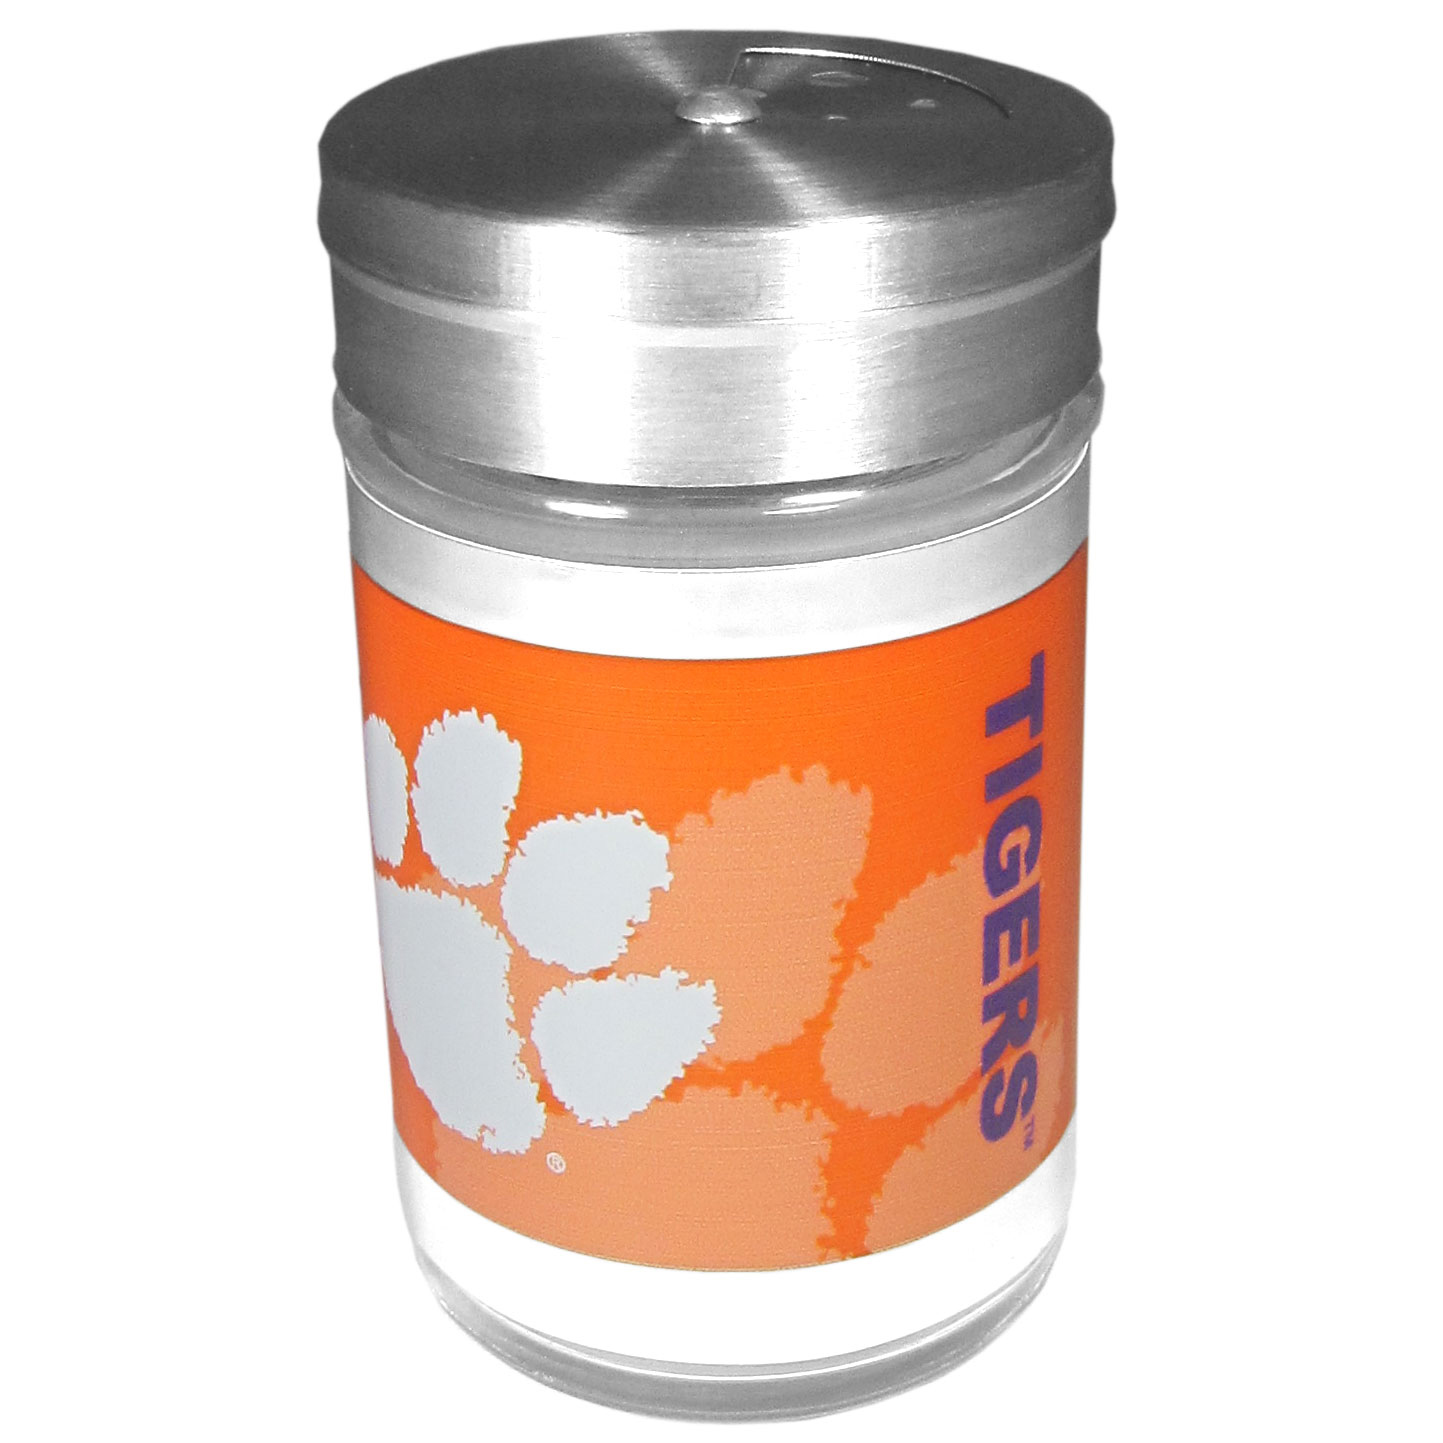 Clemson Tigers Tailgater Season Shakers - Spice it up with our Clemson Tigers tailgater season shakers! This compact shaker is 2 inch tall with a twist top that closes off the holes at the top making it perfect for travel preventing those messy spills. The shaker has wide holes perfect for keeping your pepper seeds or cheese toppings. The bright team graphics will make you the envy of the other fans while you are grilling up your tailgating goodies.